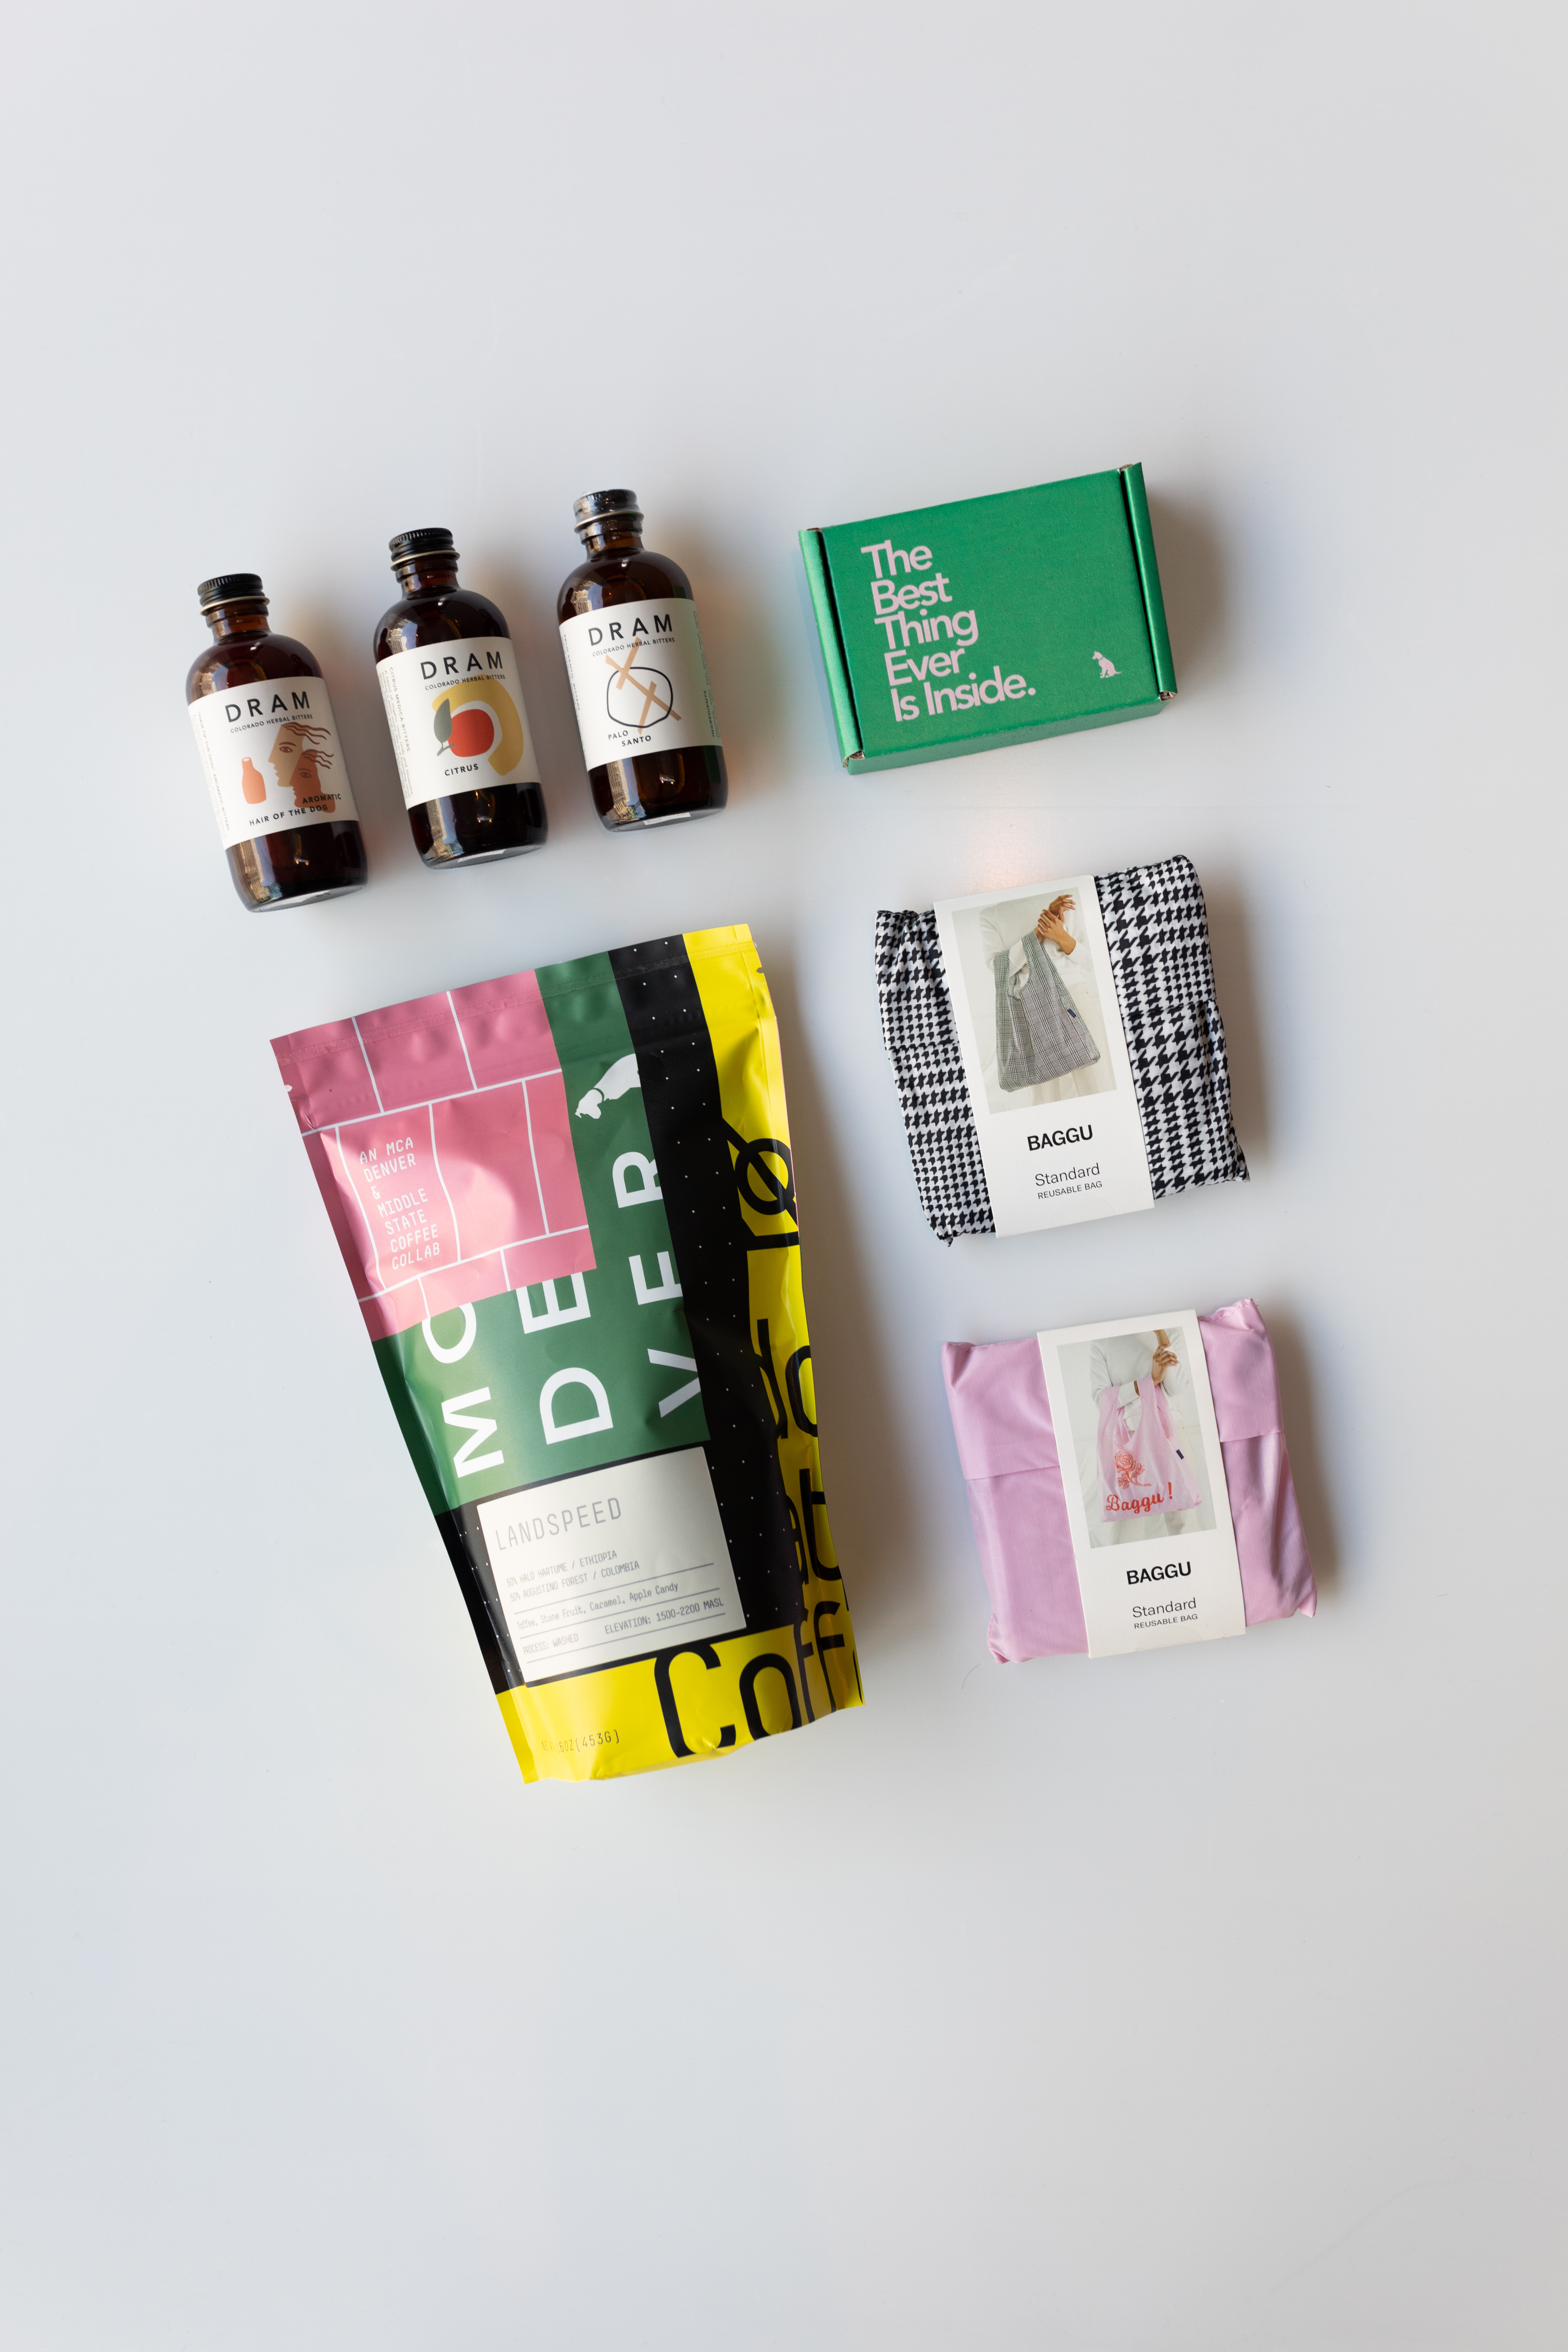 A bag of MCA Denver branded coffee from Middle State Coffee titled Landspeed; three bottls of bitters from Dram Apothecary; a green box reading The Best thing Ever is Inside; a black and white houndstooth bag; a pink bag from bagu.